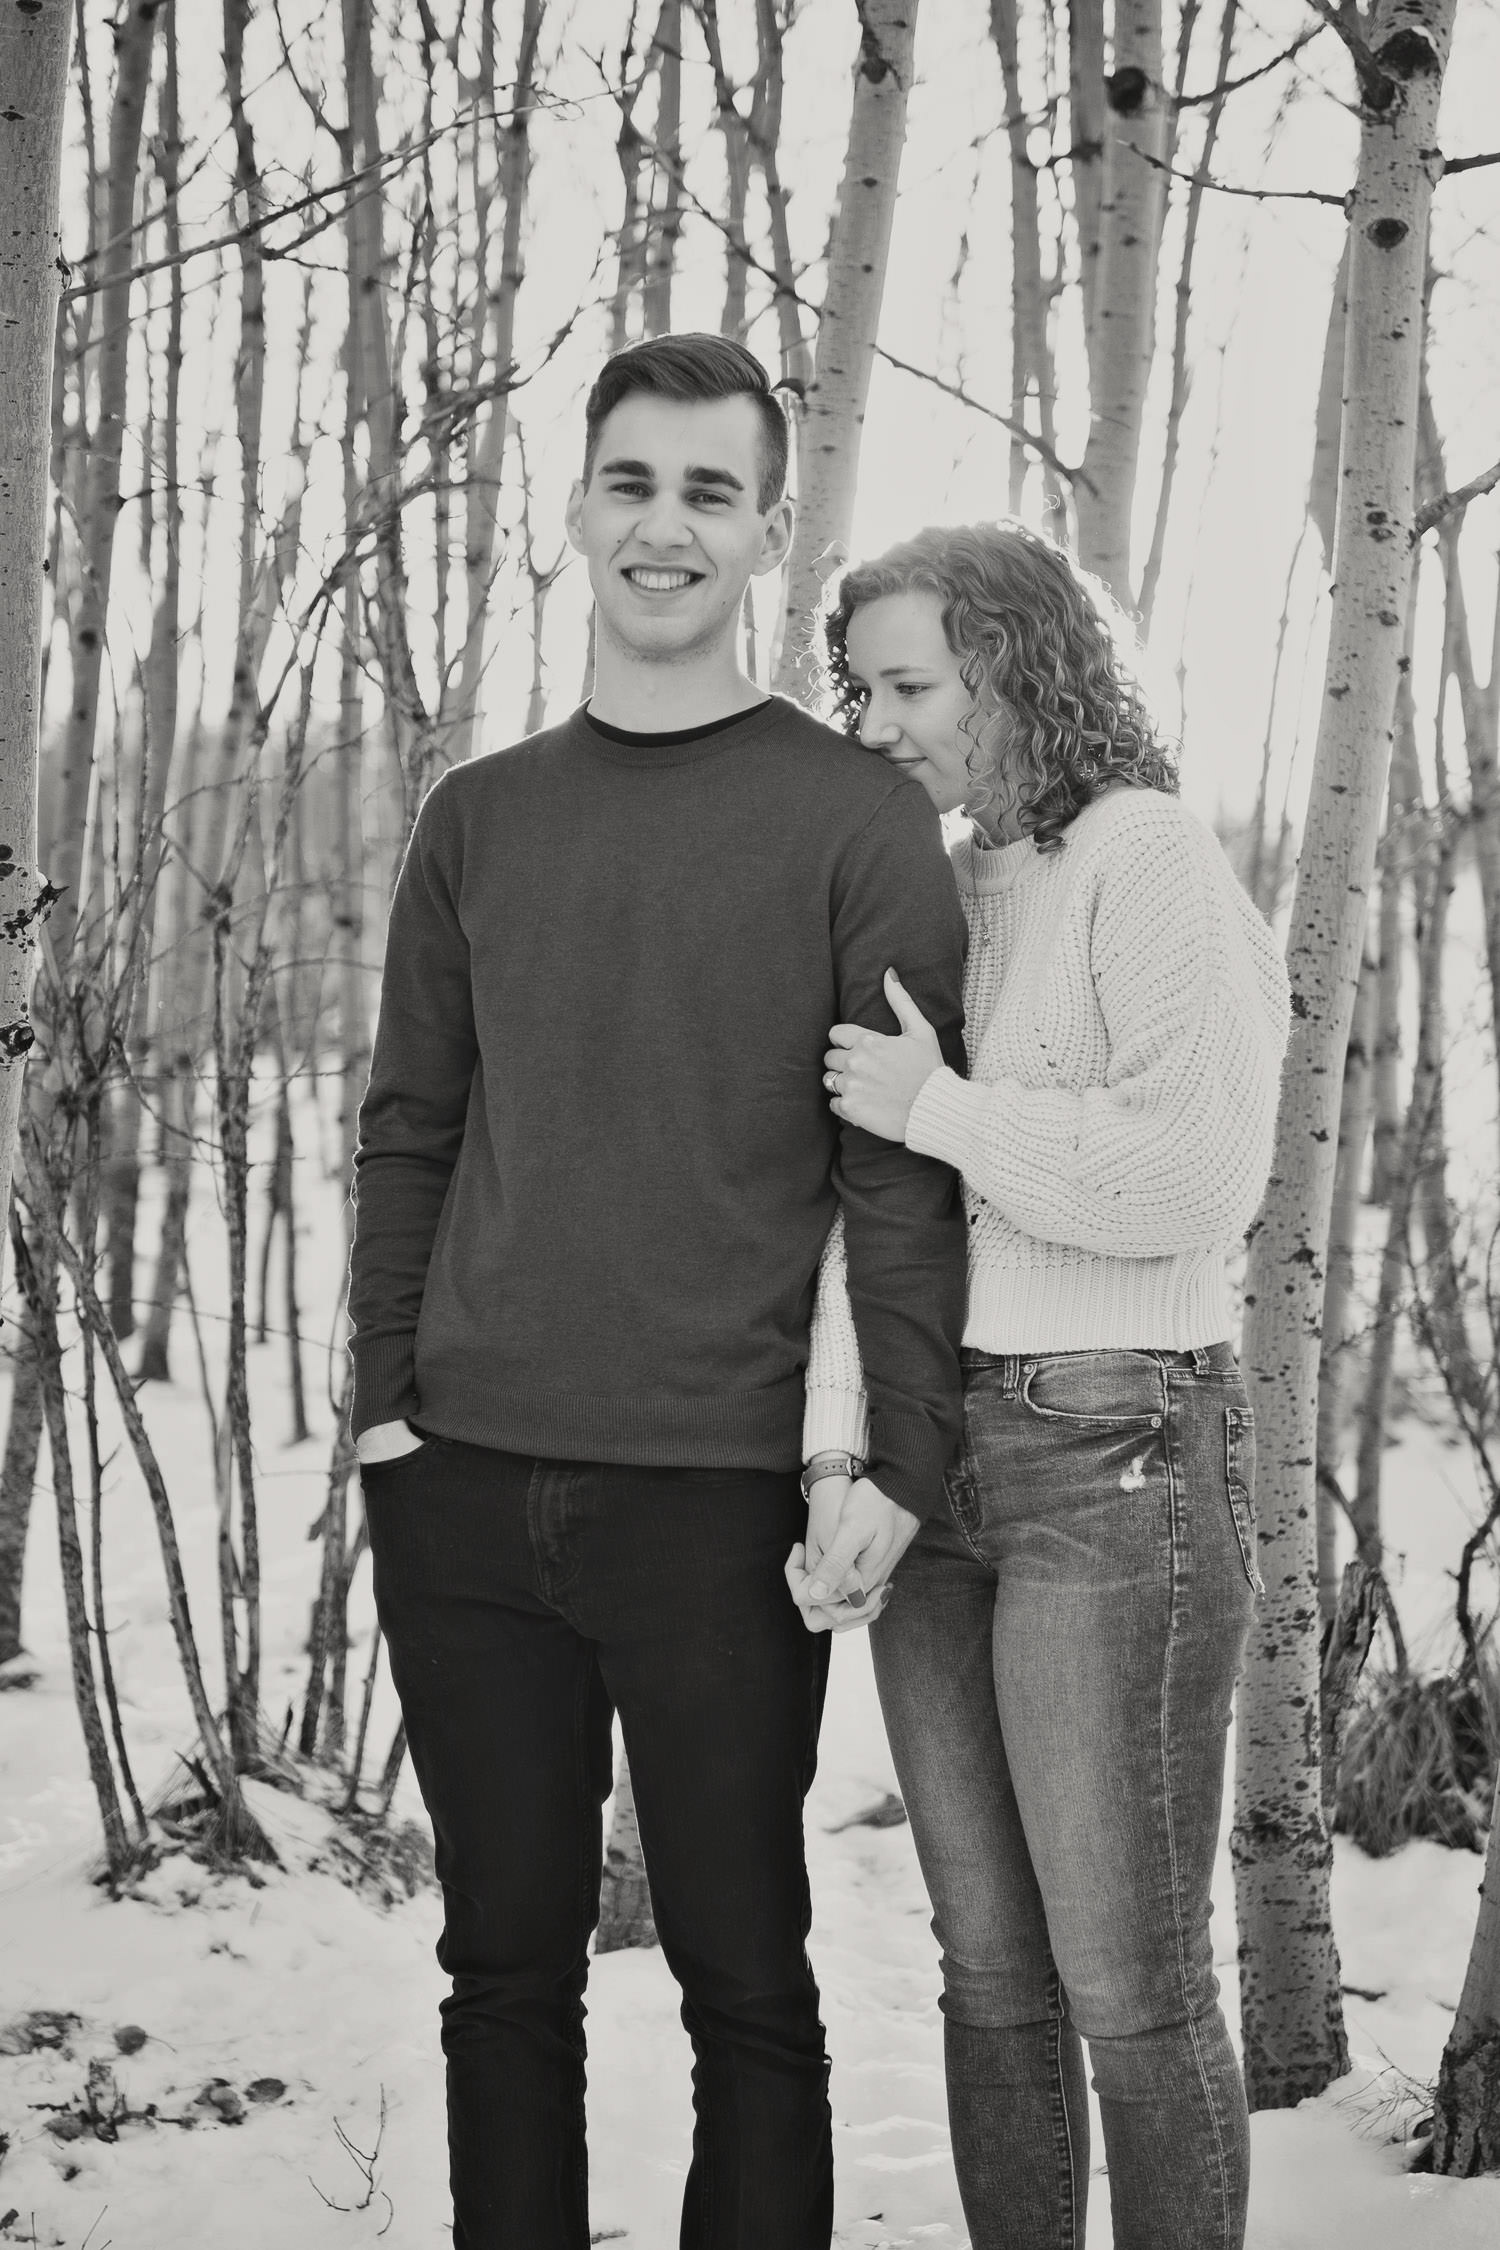 couple in the trees during their winter engagement session captured by Tara Whittaker Photography